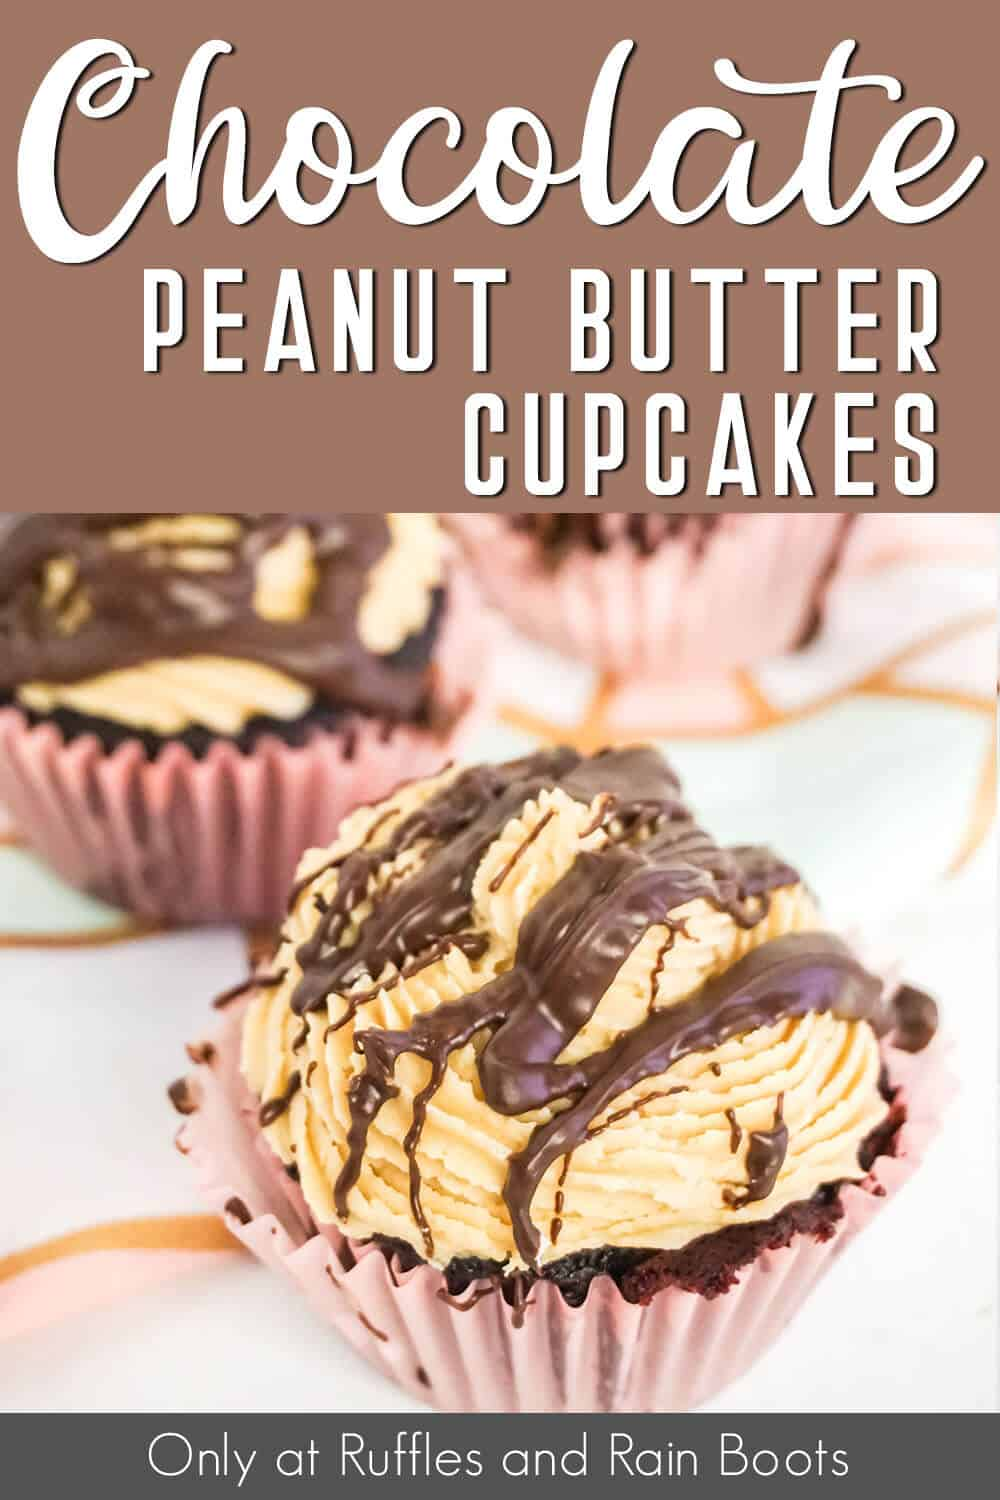 closeup of chocolate cupcakes with chocolate drizzle on peanut butter frosting with text which reads easy chocolate peanut butter cupcakes